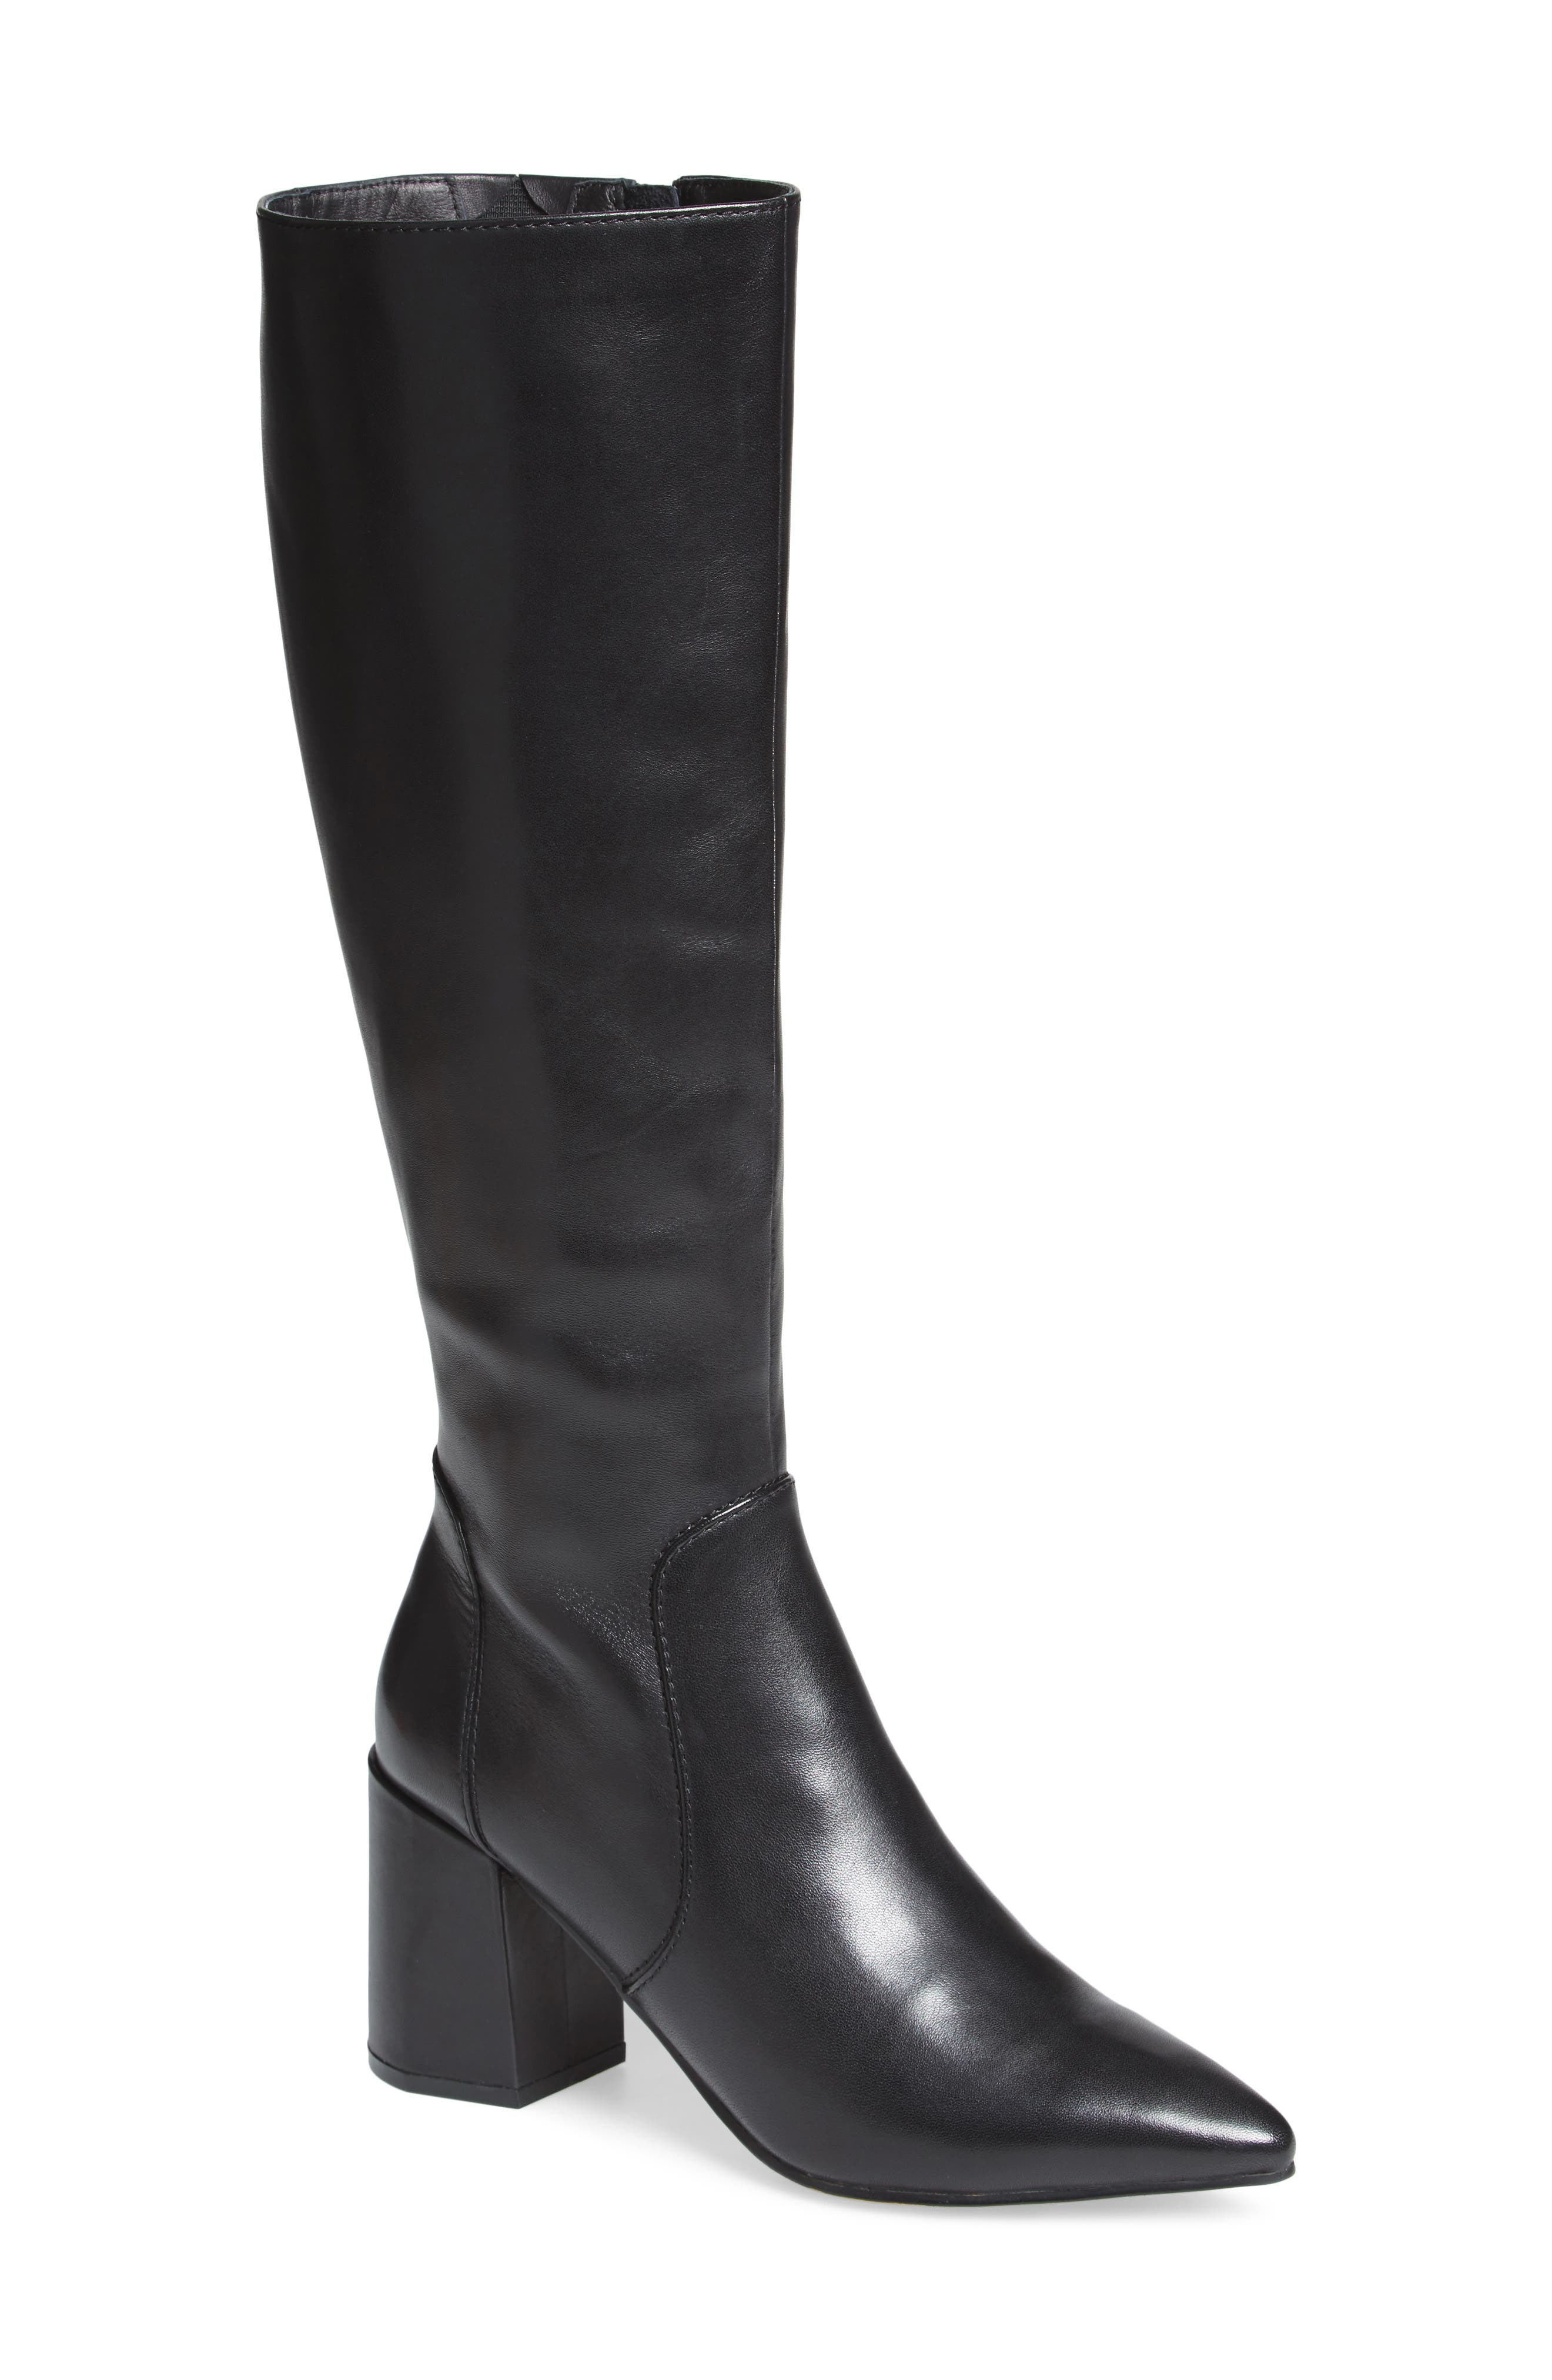 Blink Boot,                         Main,                         color, Black Leather